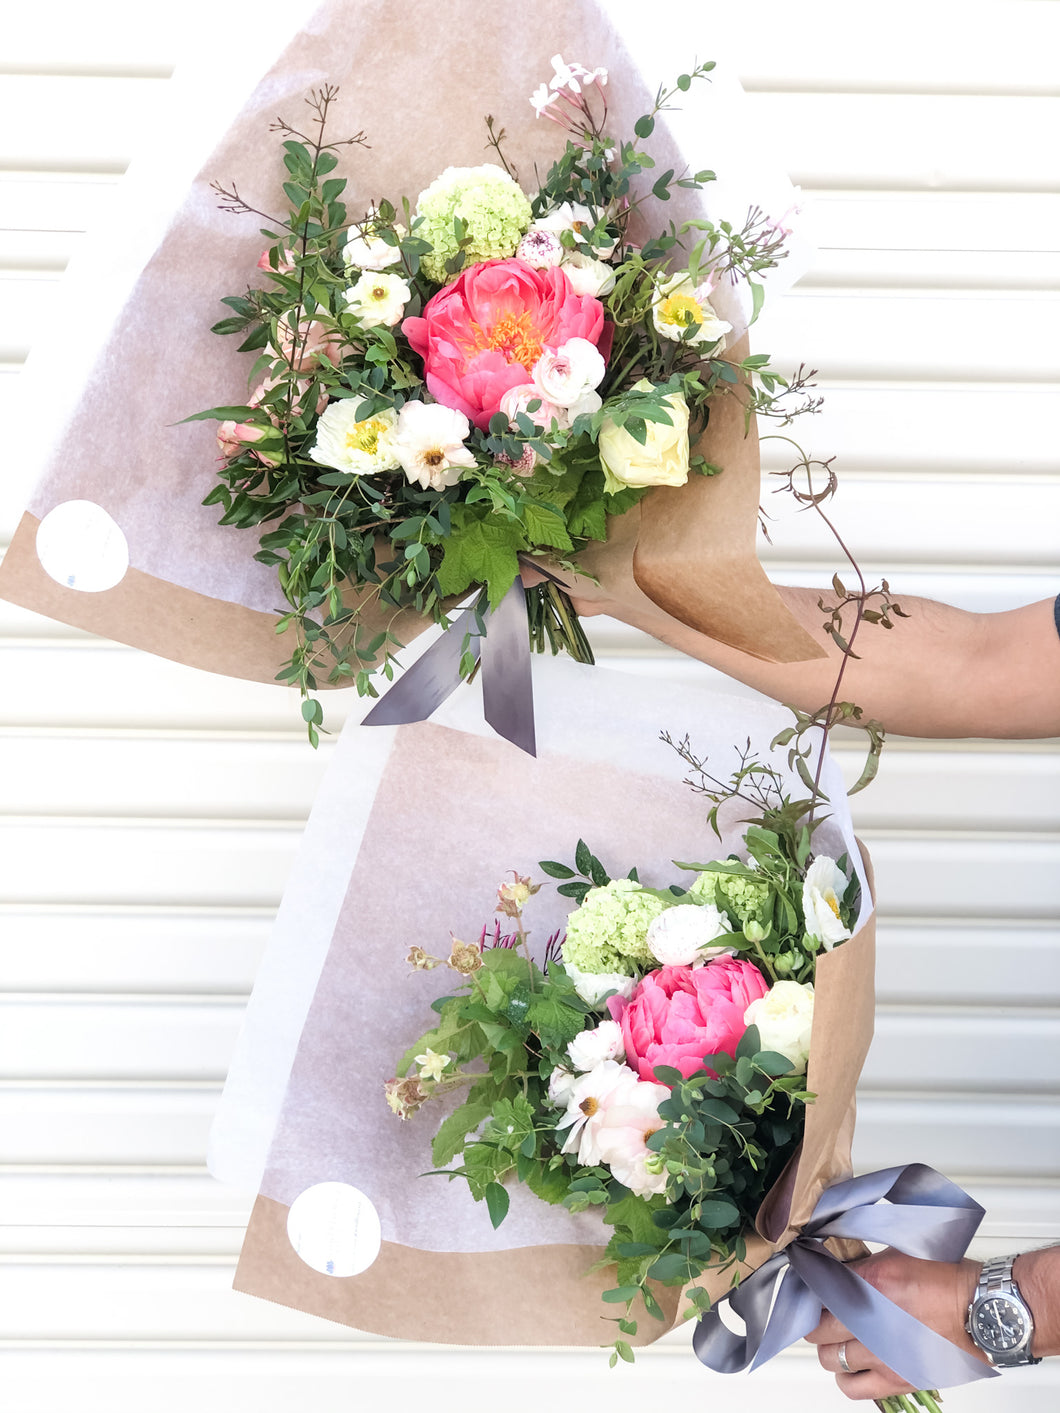 Medium hand-tied bouquet